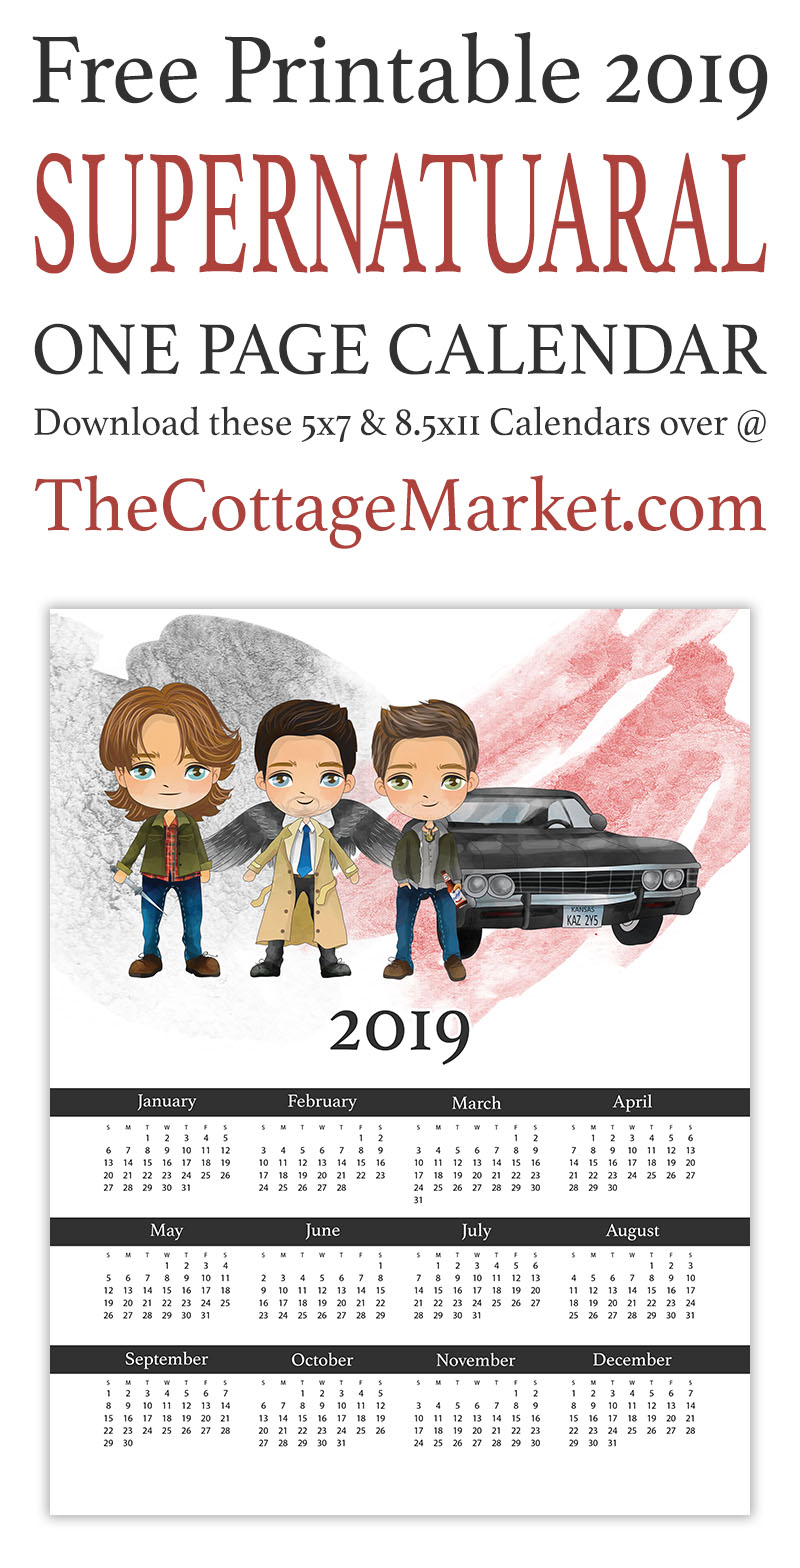 This Supernatural Free Printable Calendar is all yours with just a click of a key and a printer! Enjoy Dean, Sammy, Cas and Baby all year round!